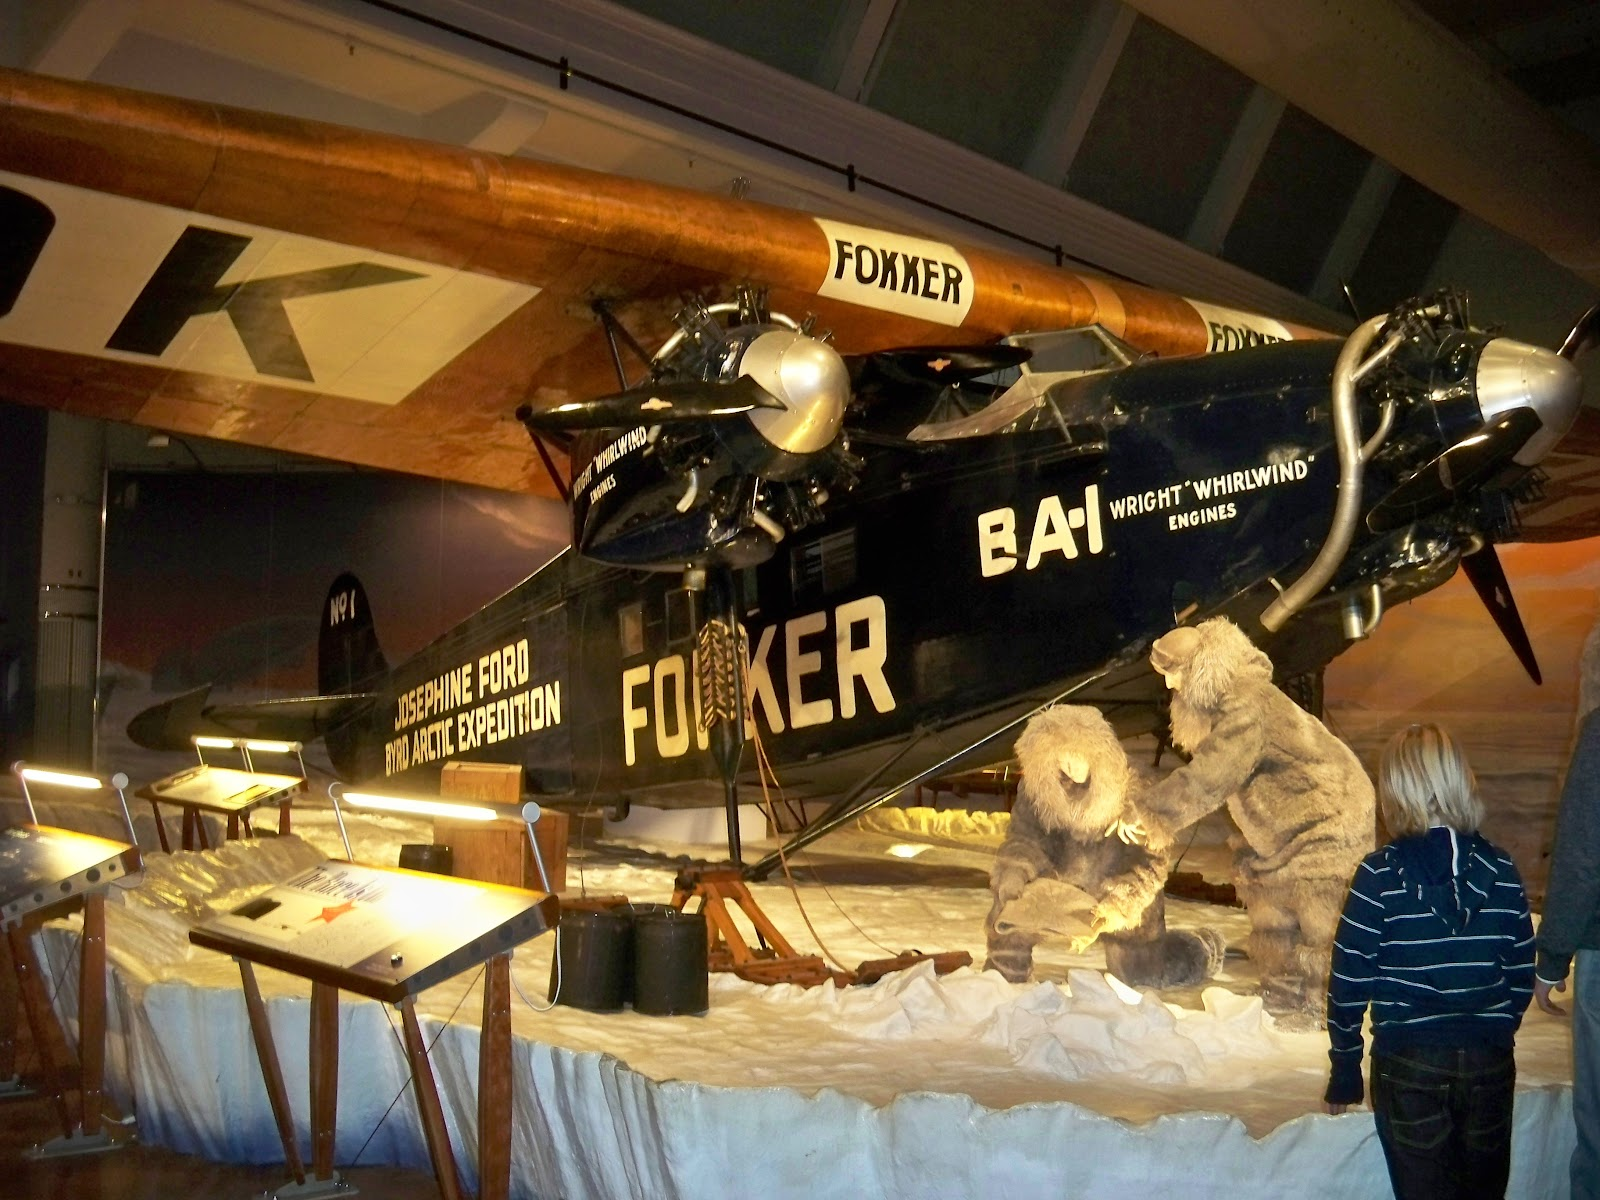 henry ford essay the henry ford museum part of red tail squadron  the henry ford museum part of red tail squadron the henry ford museum part 1 of